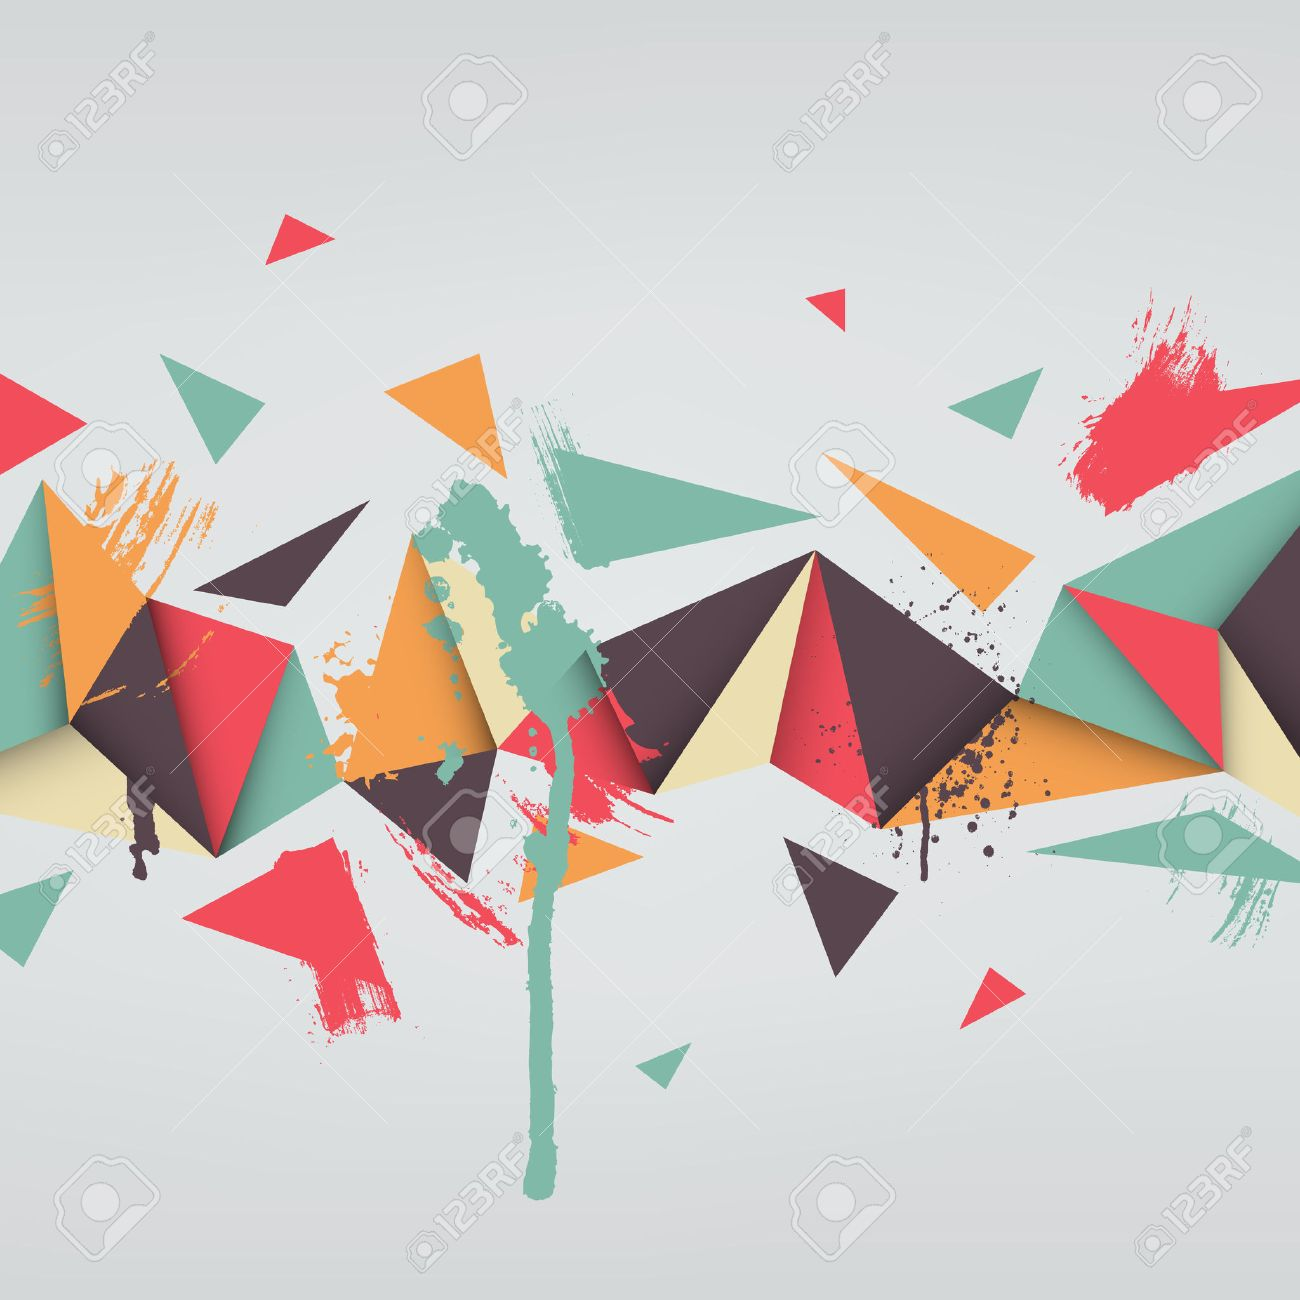 Vector Background Illustration Of Abstract Texture With Triangles